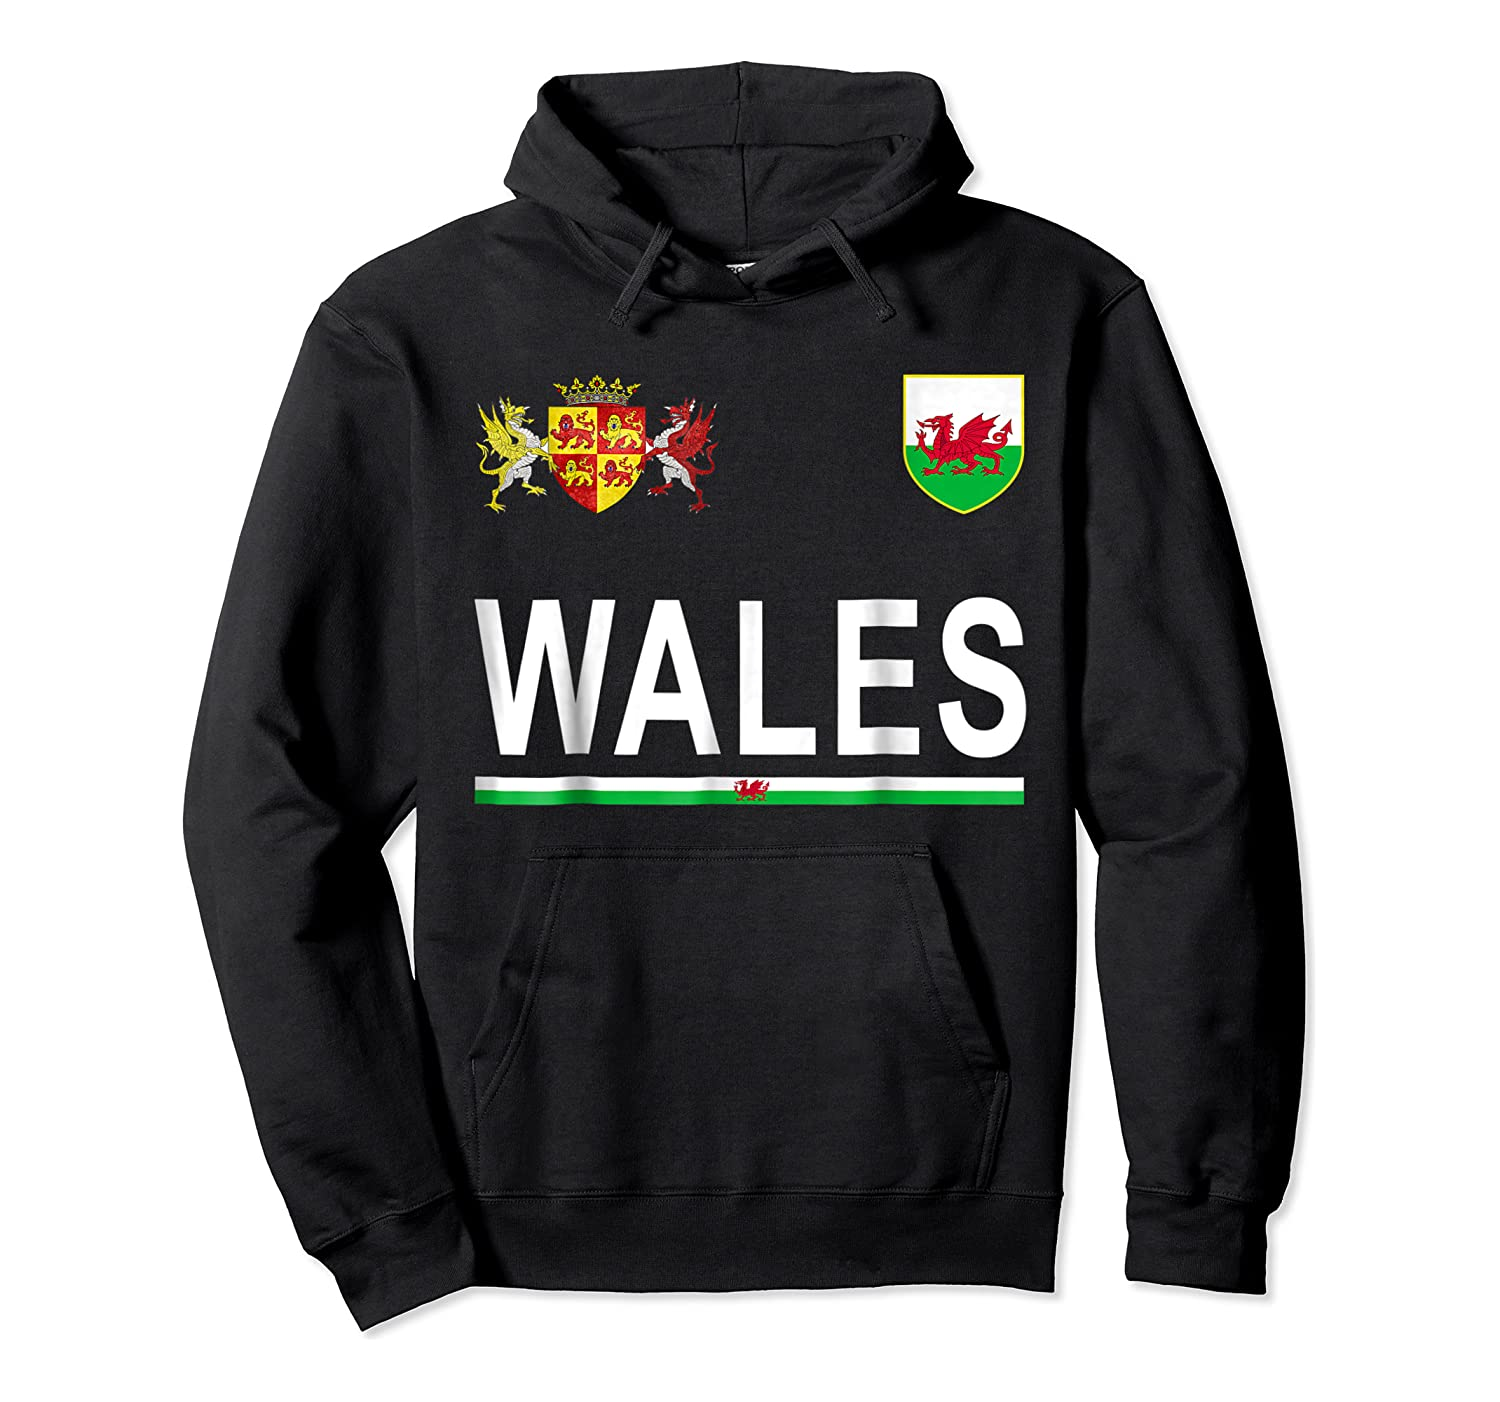 Wales Cheer 2017 Football Welsh Shirts Unisex Pullover Hoodie